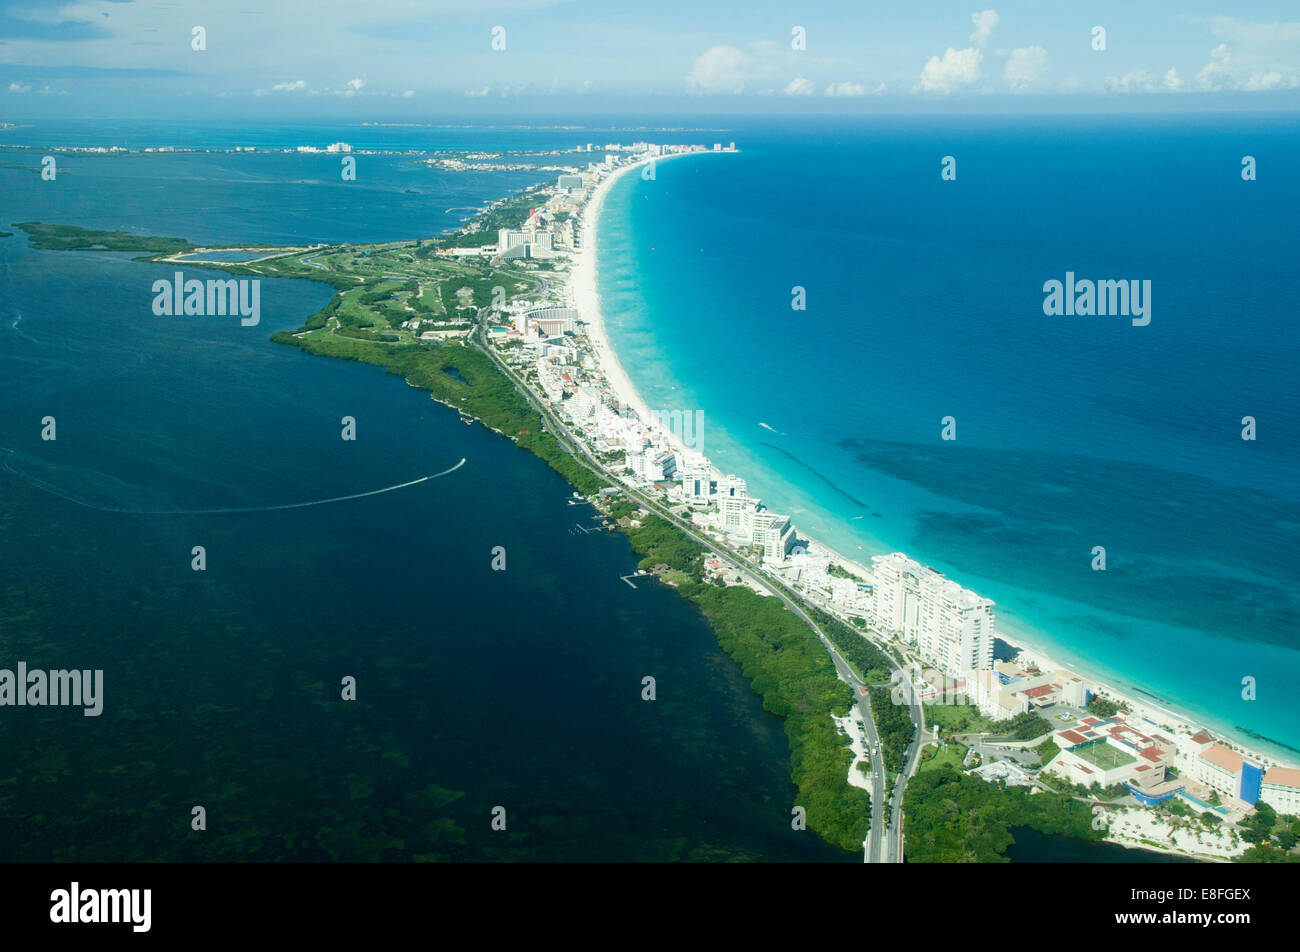 Aerial view of Cancun, Mexico - Stock Image